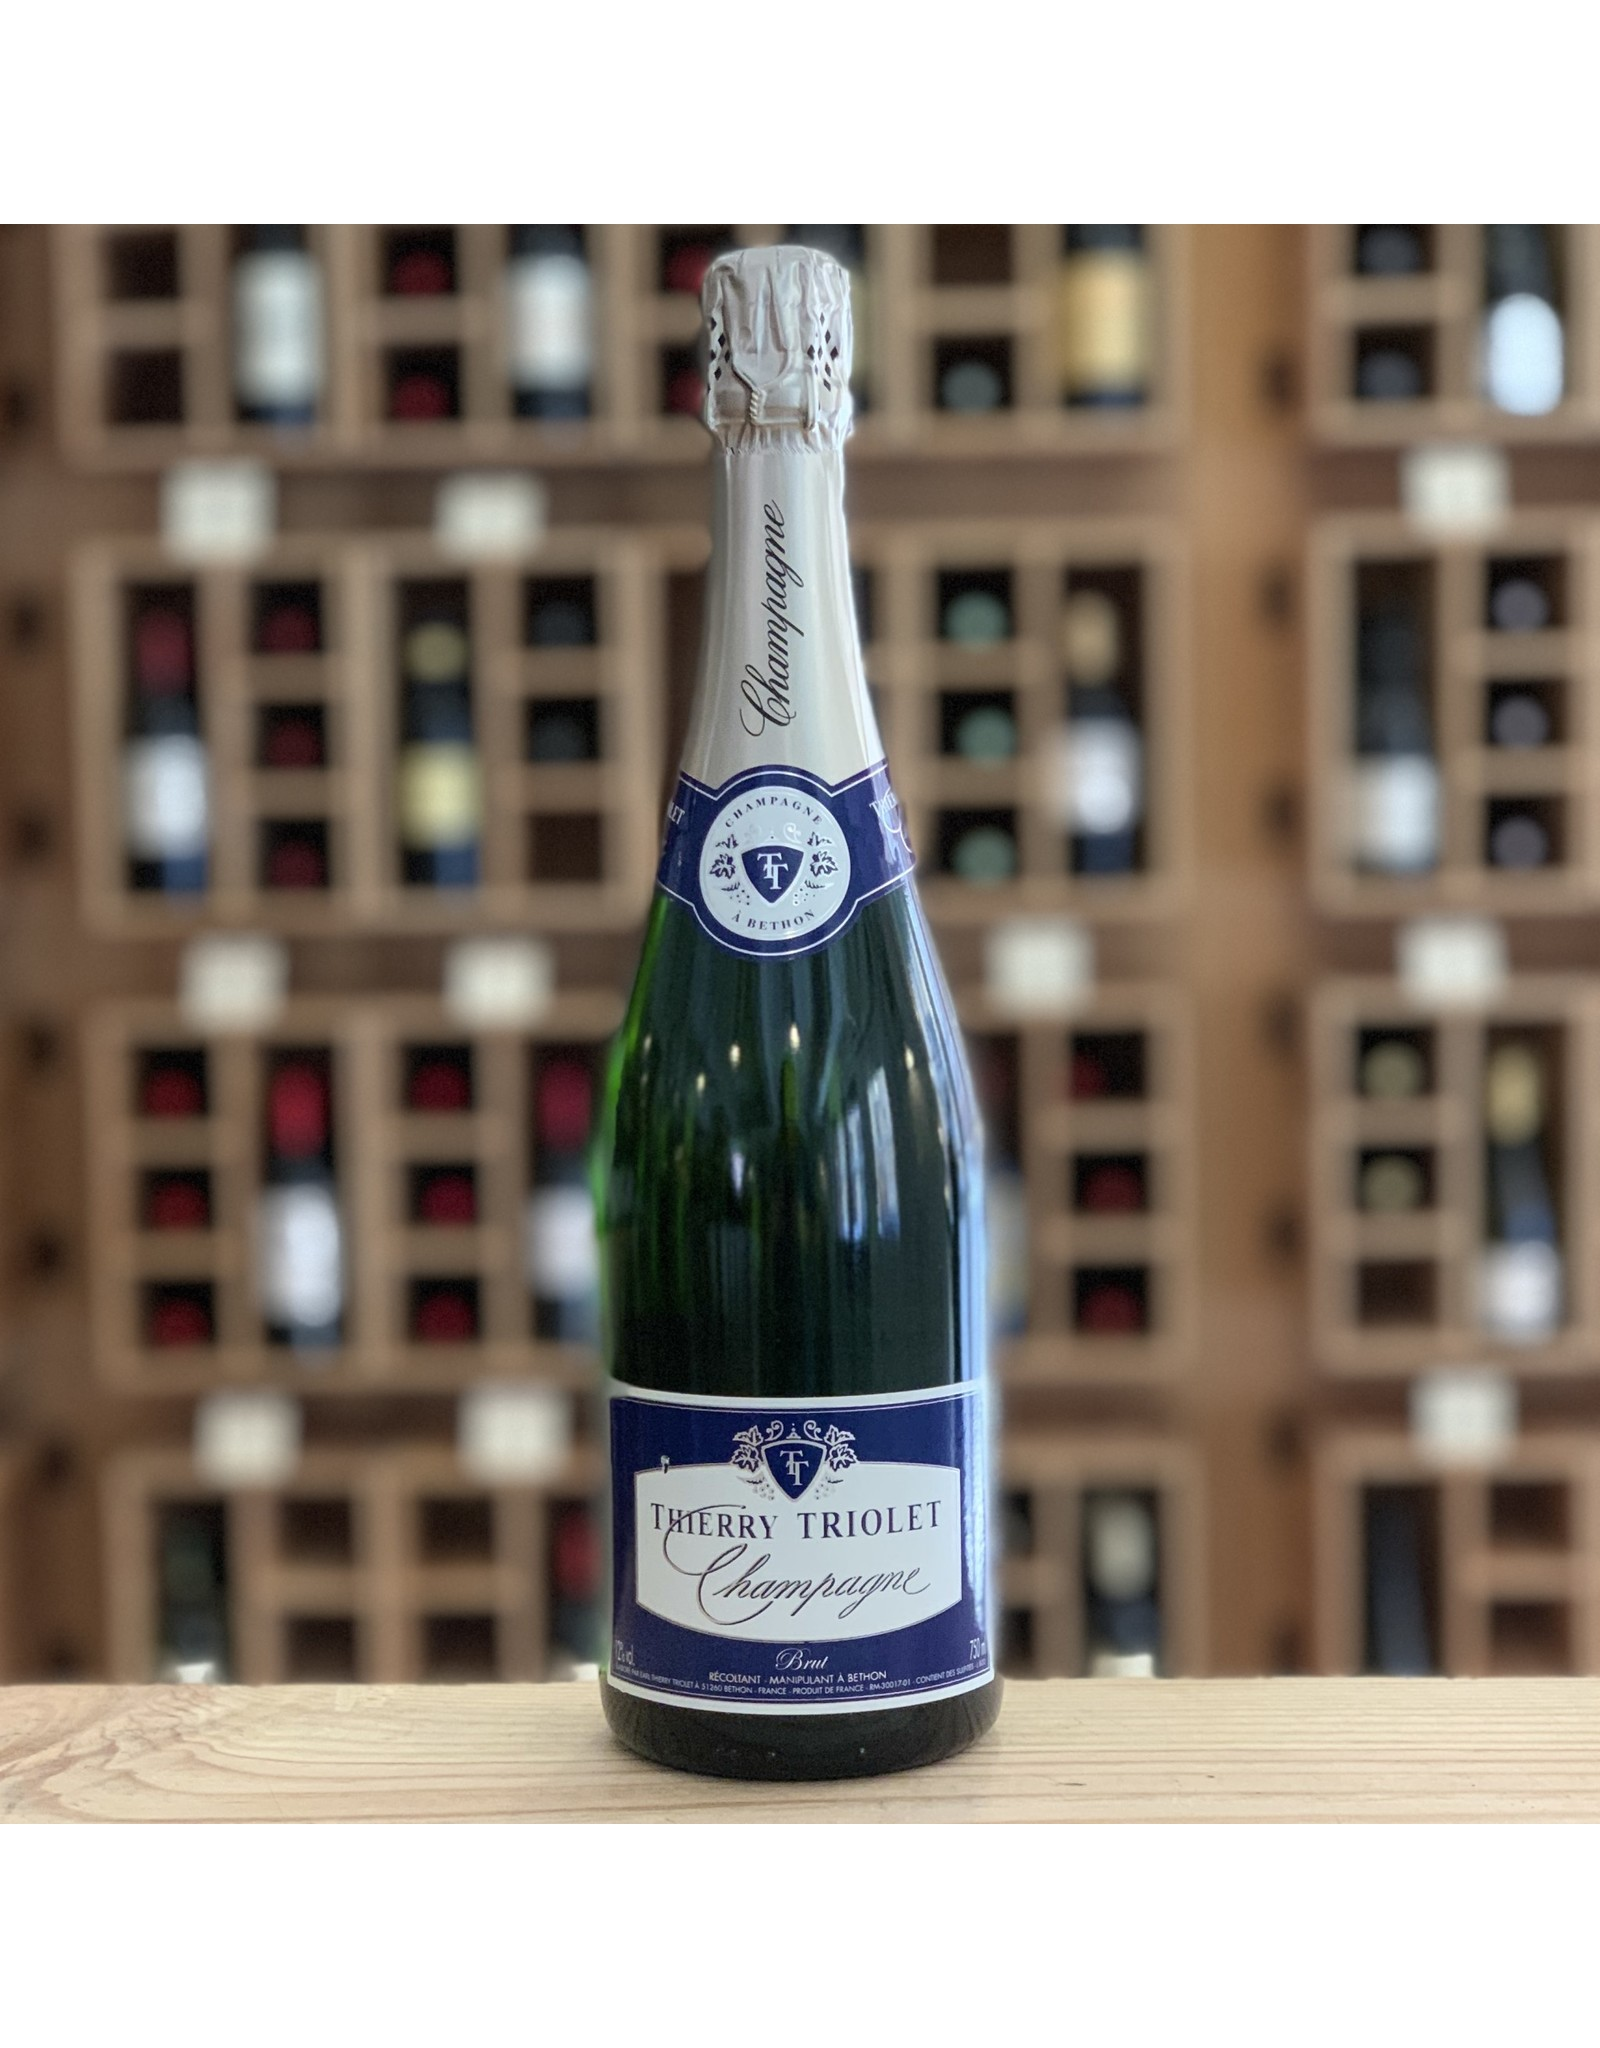 Thierry Triolet Brut NV - Champagne, France